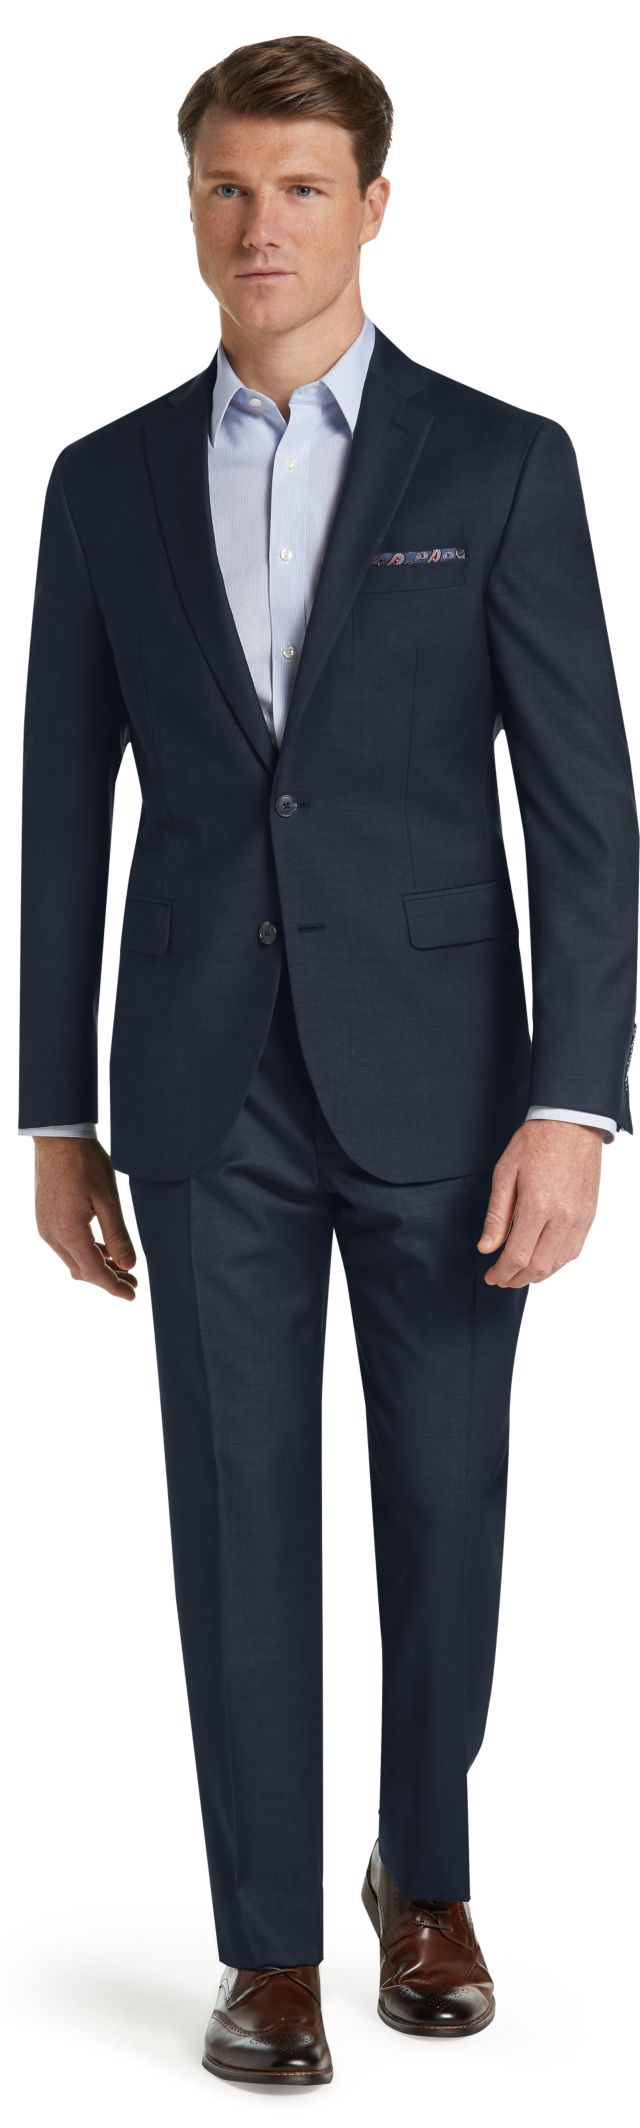 Jos. A. Bank Traveler Collection Slim Fit Sharkskin Suit